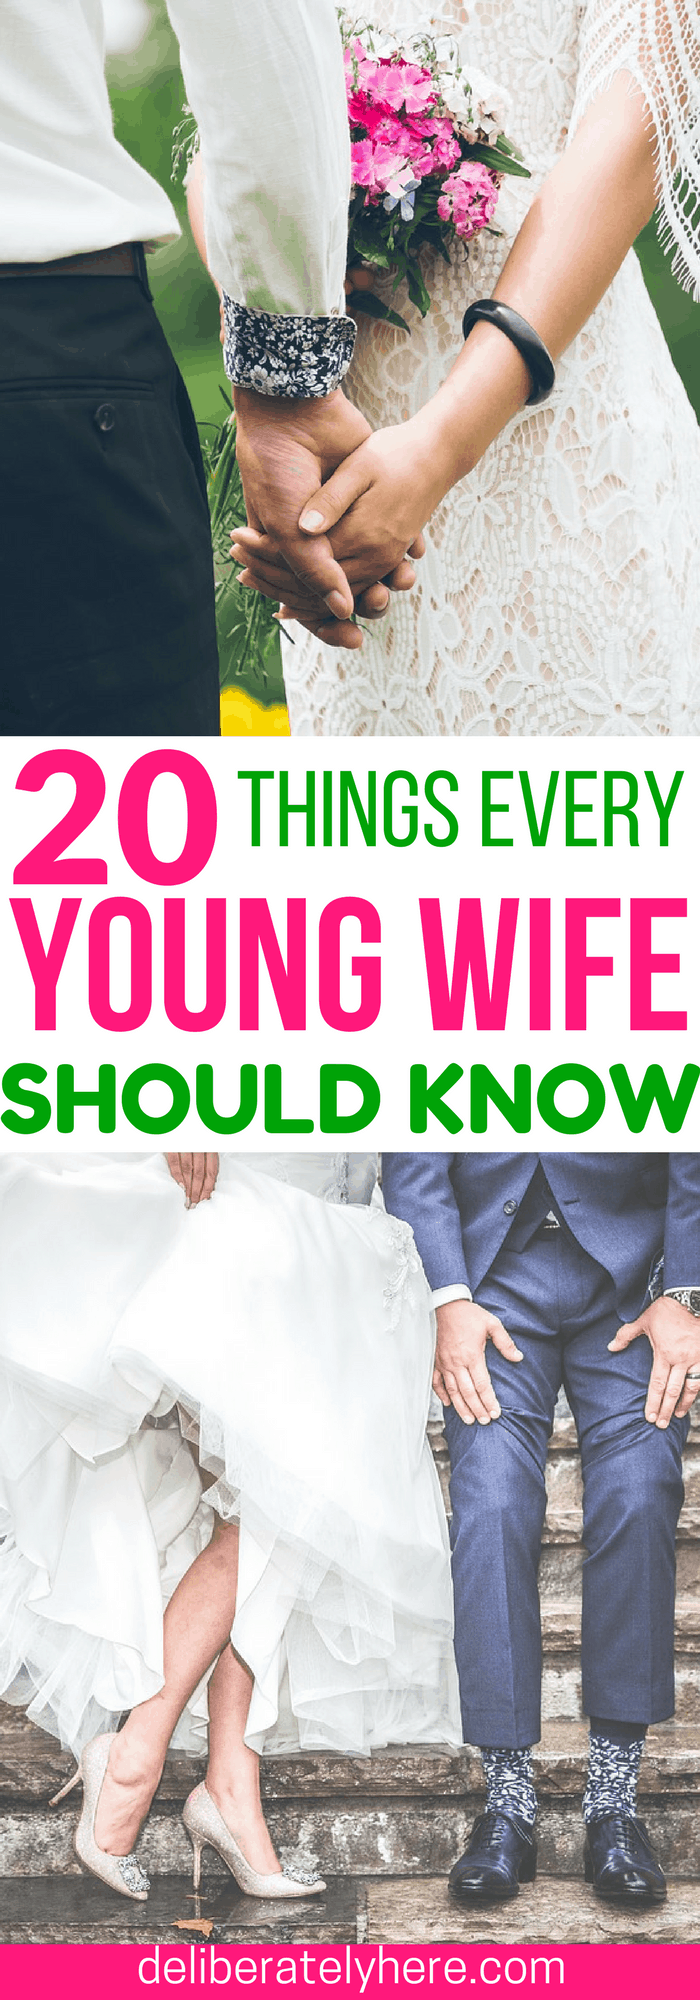 20 Things Every Young Wife Should Know